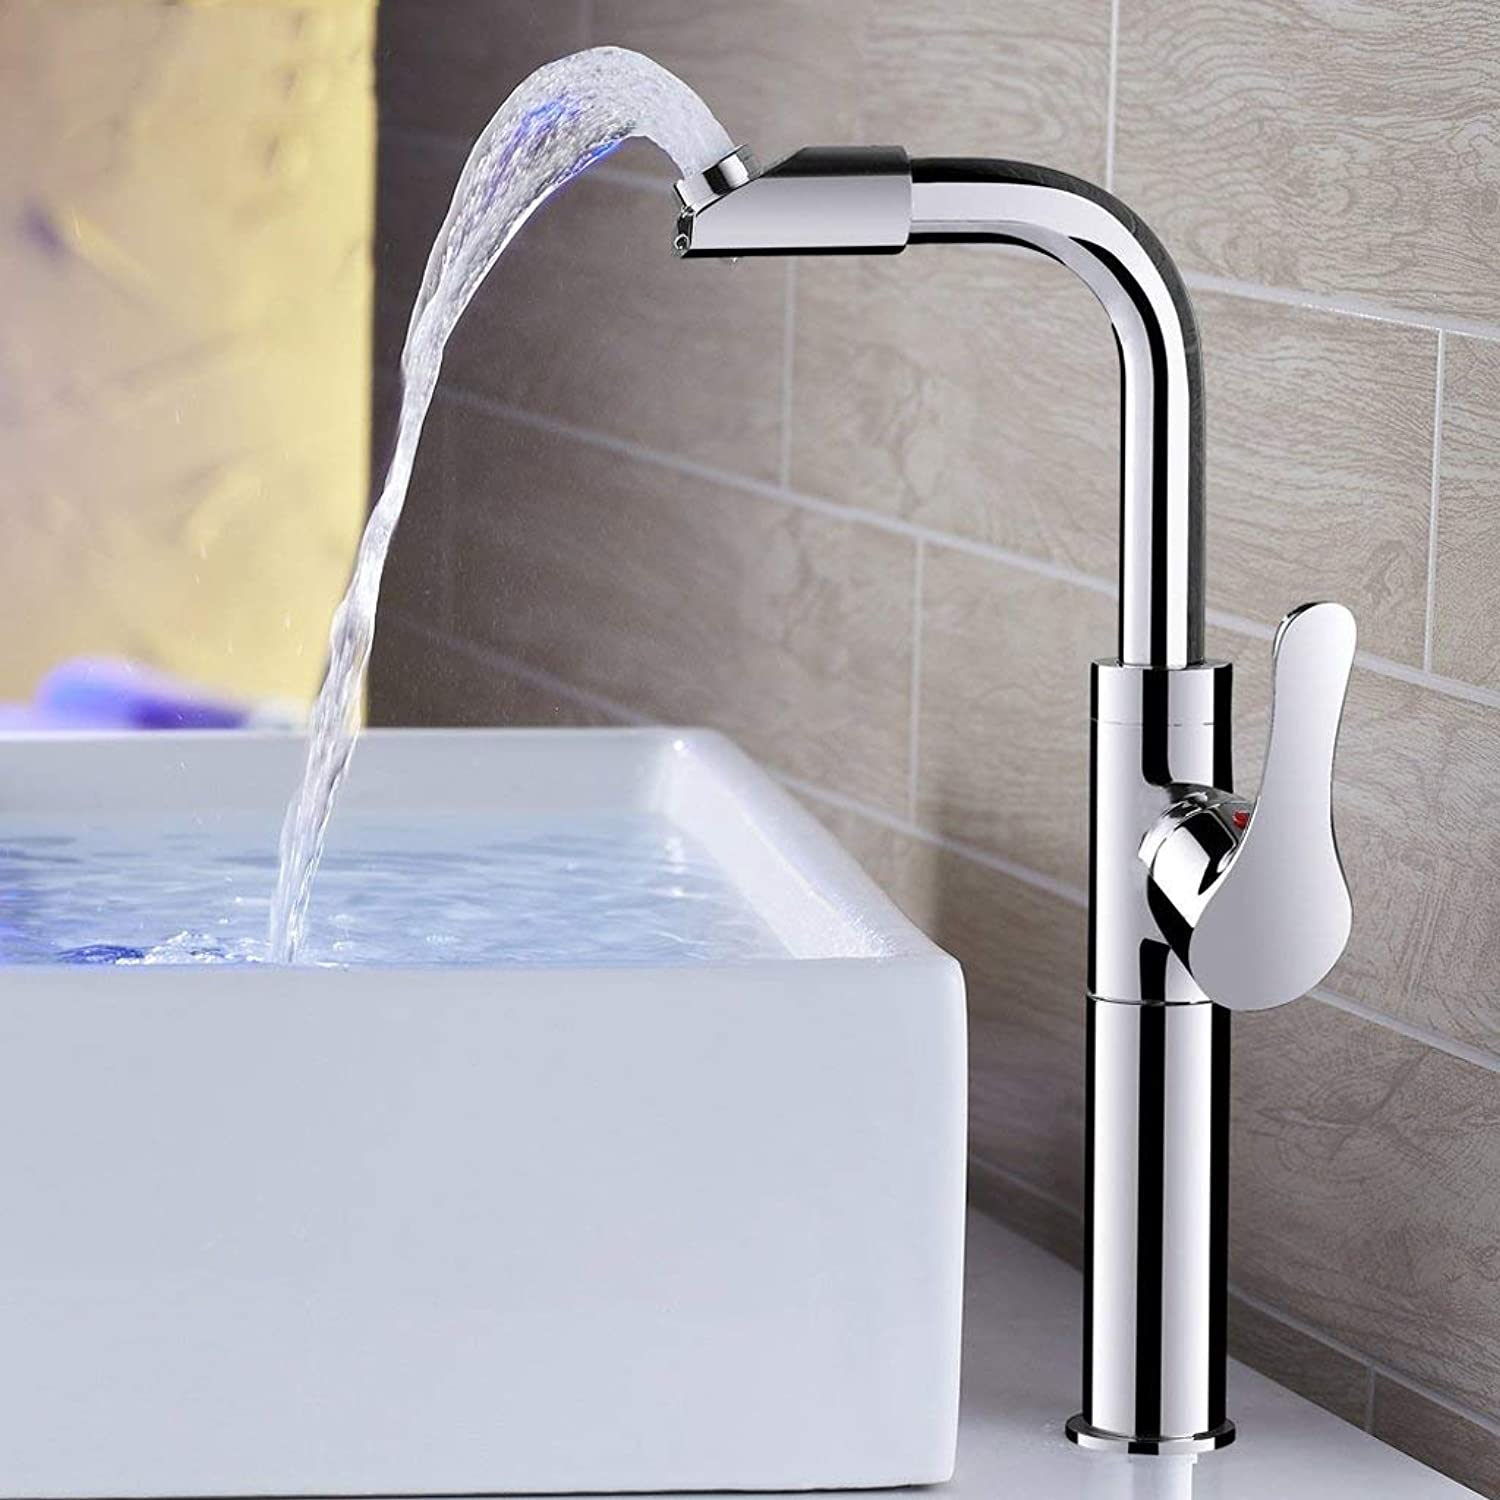 Kitchen Sink Taps ZQG Full copper body with high bathroom bathroom can be redated hand wash hot and cold basin faucet